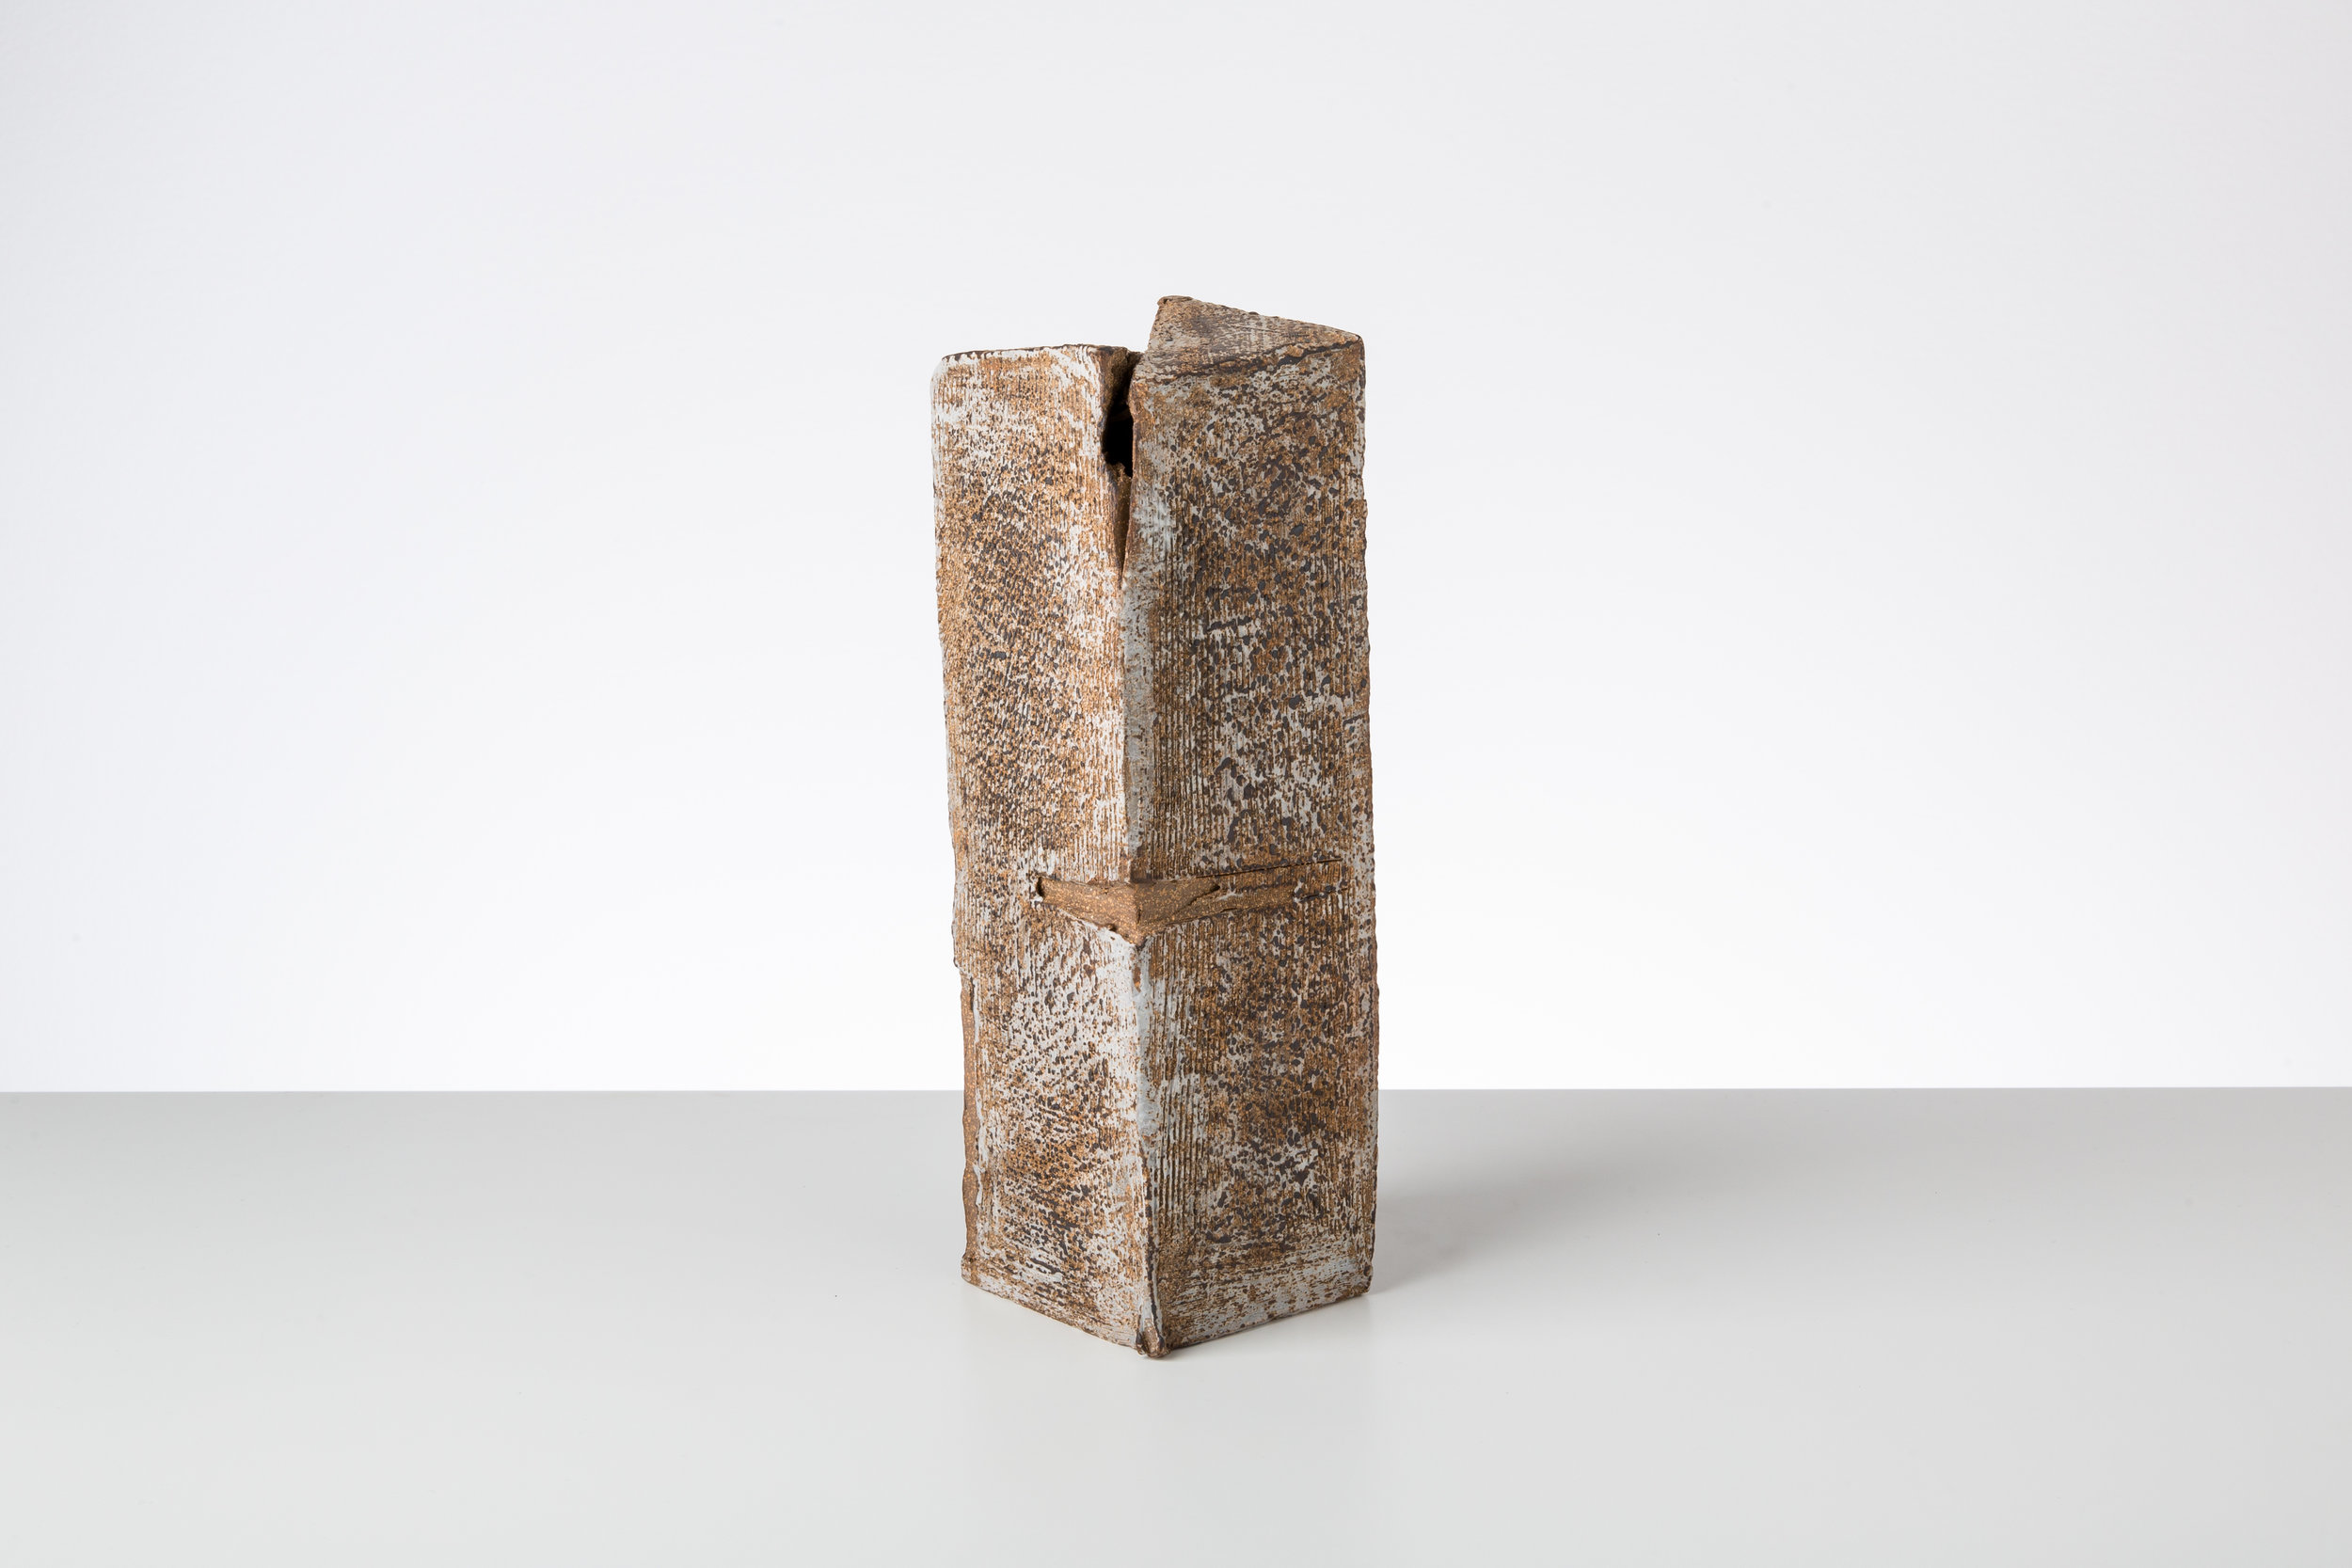 Toni Ross  Stele #11 , 2015 stoneware and slip  10 1/4 x 3 1/4 x 3 1/2 in.